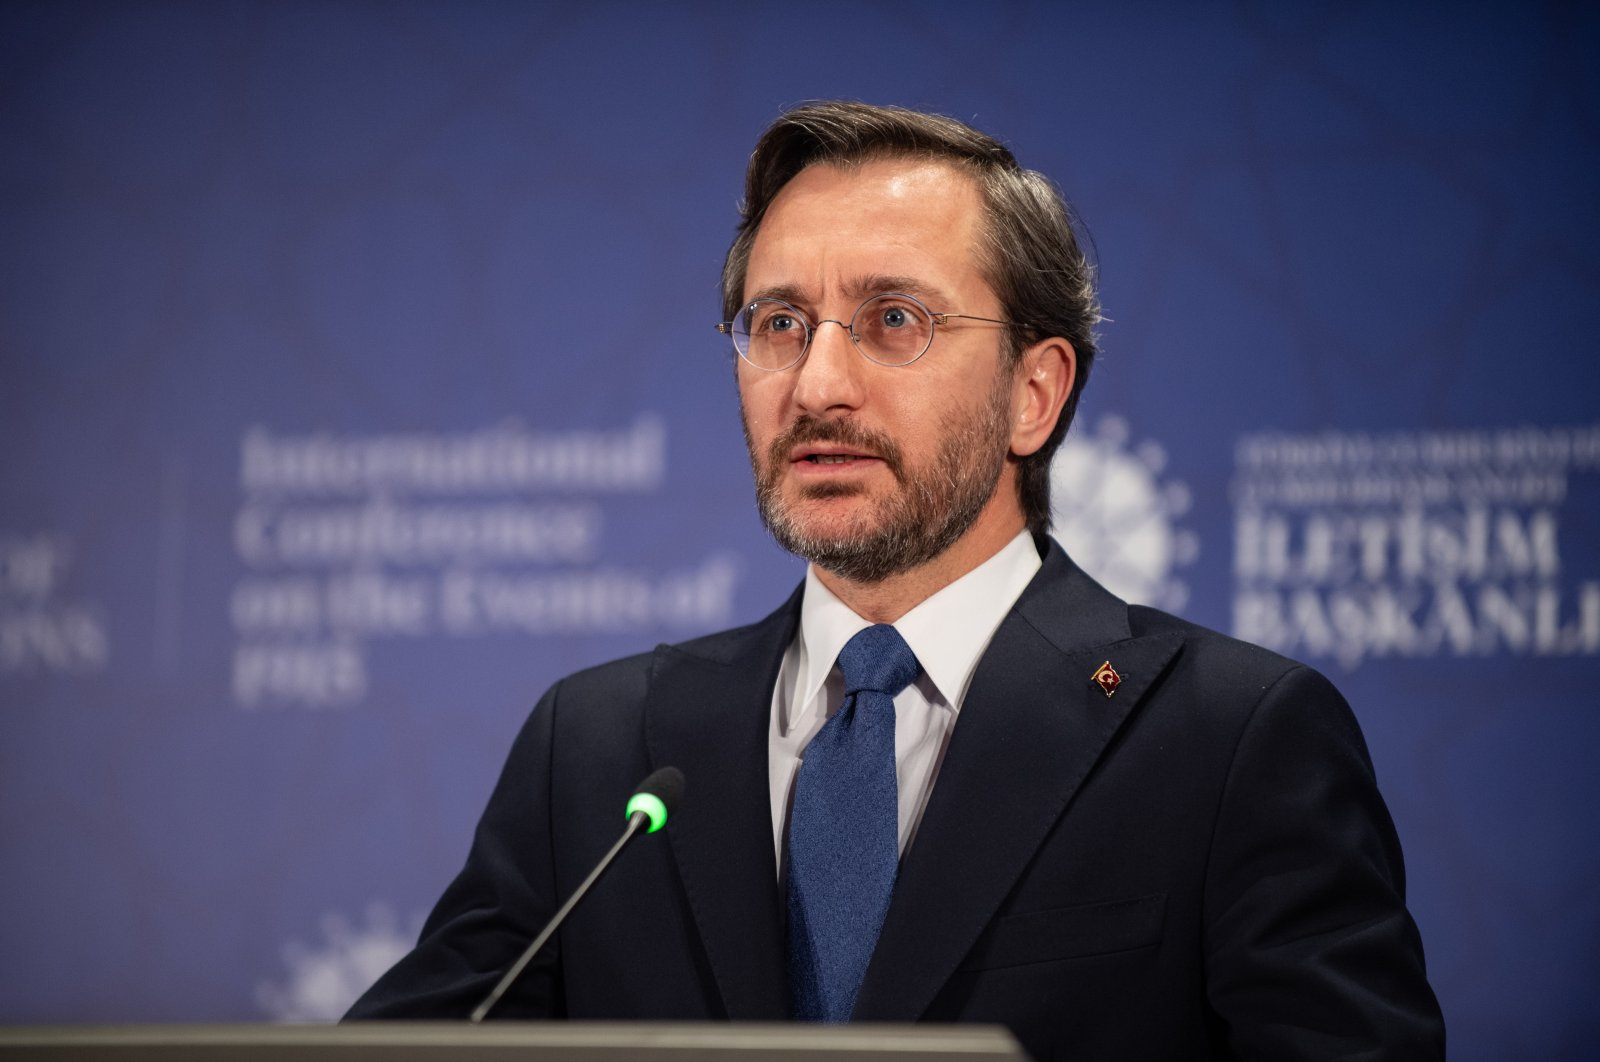 Communications Director Fahrettin Altun delivers a speech, April 22, 2021. (Courtesy of the Communications Directorate)